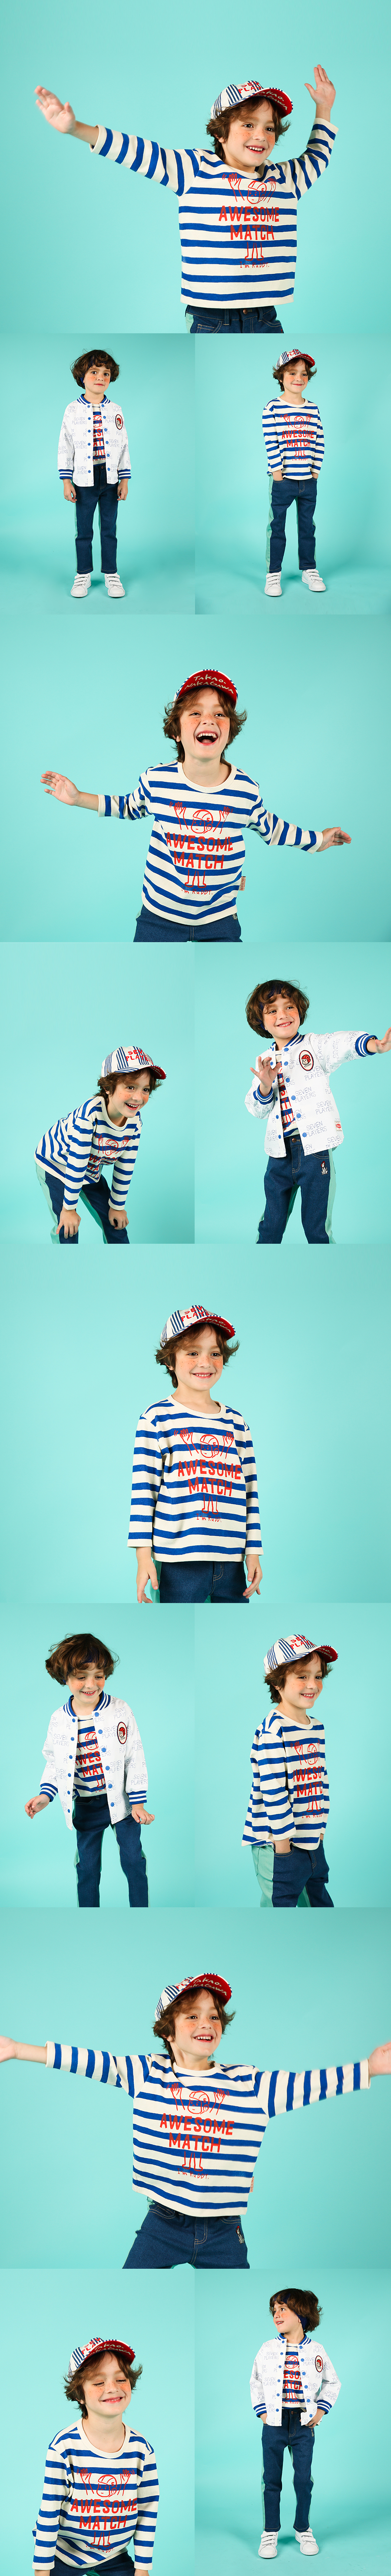 Awesome match ruddy stripe long sleeve tee 상세 이미지